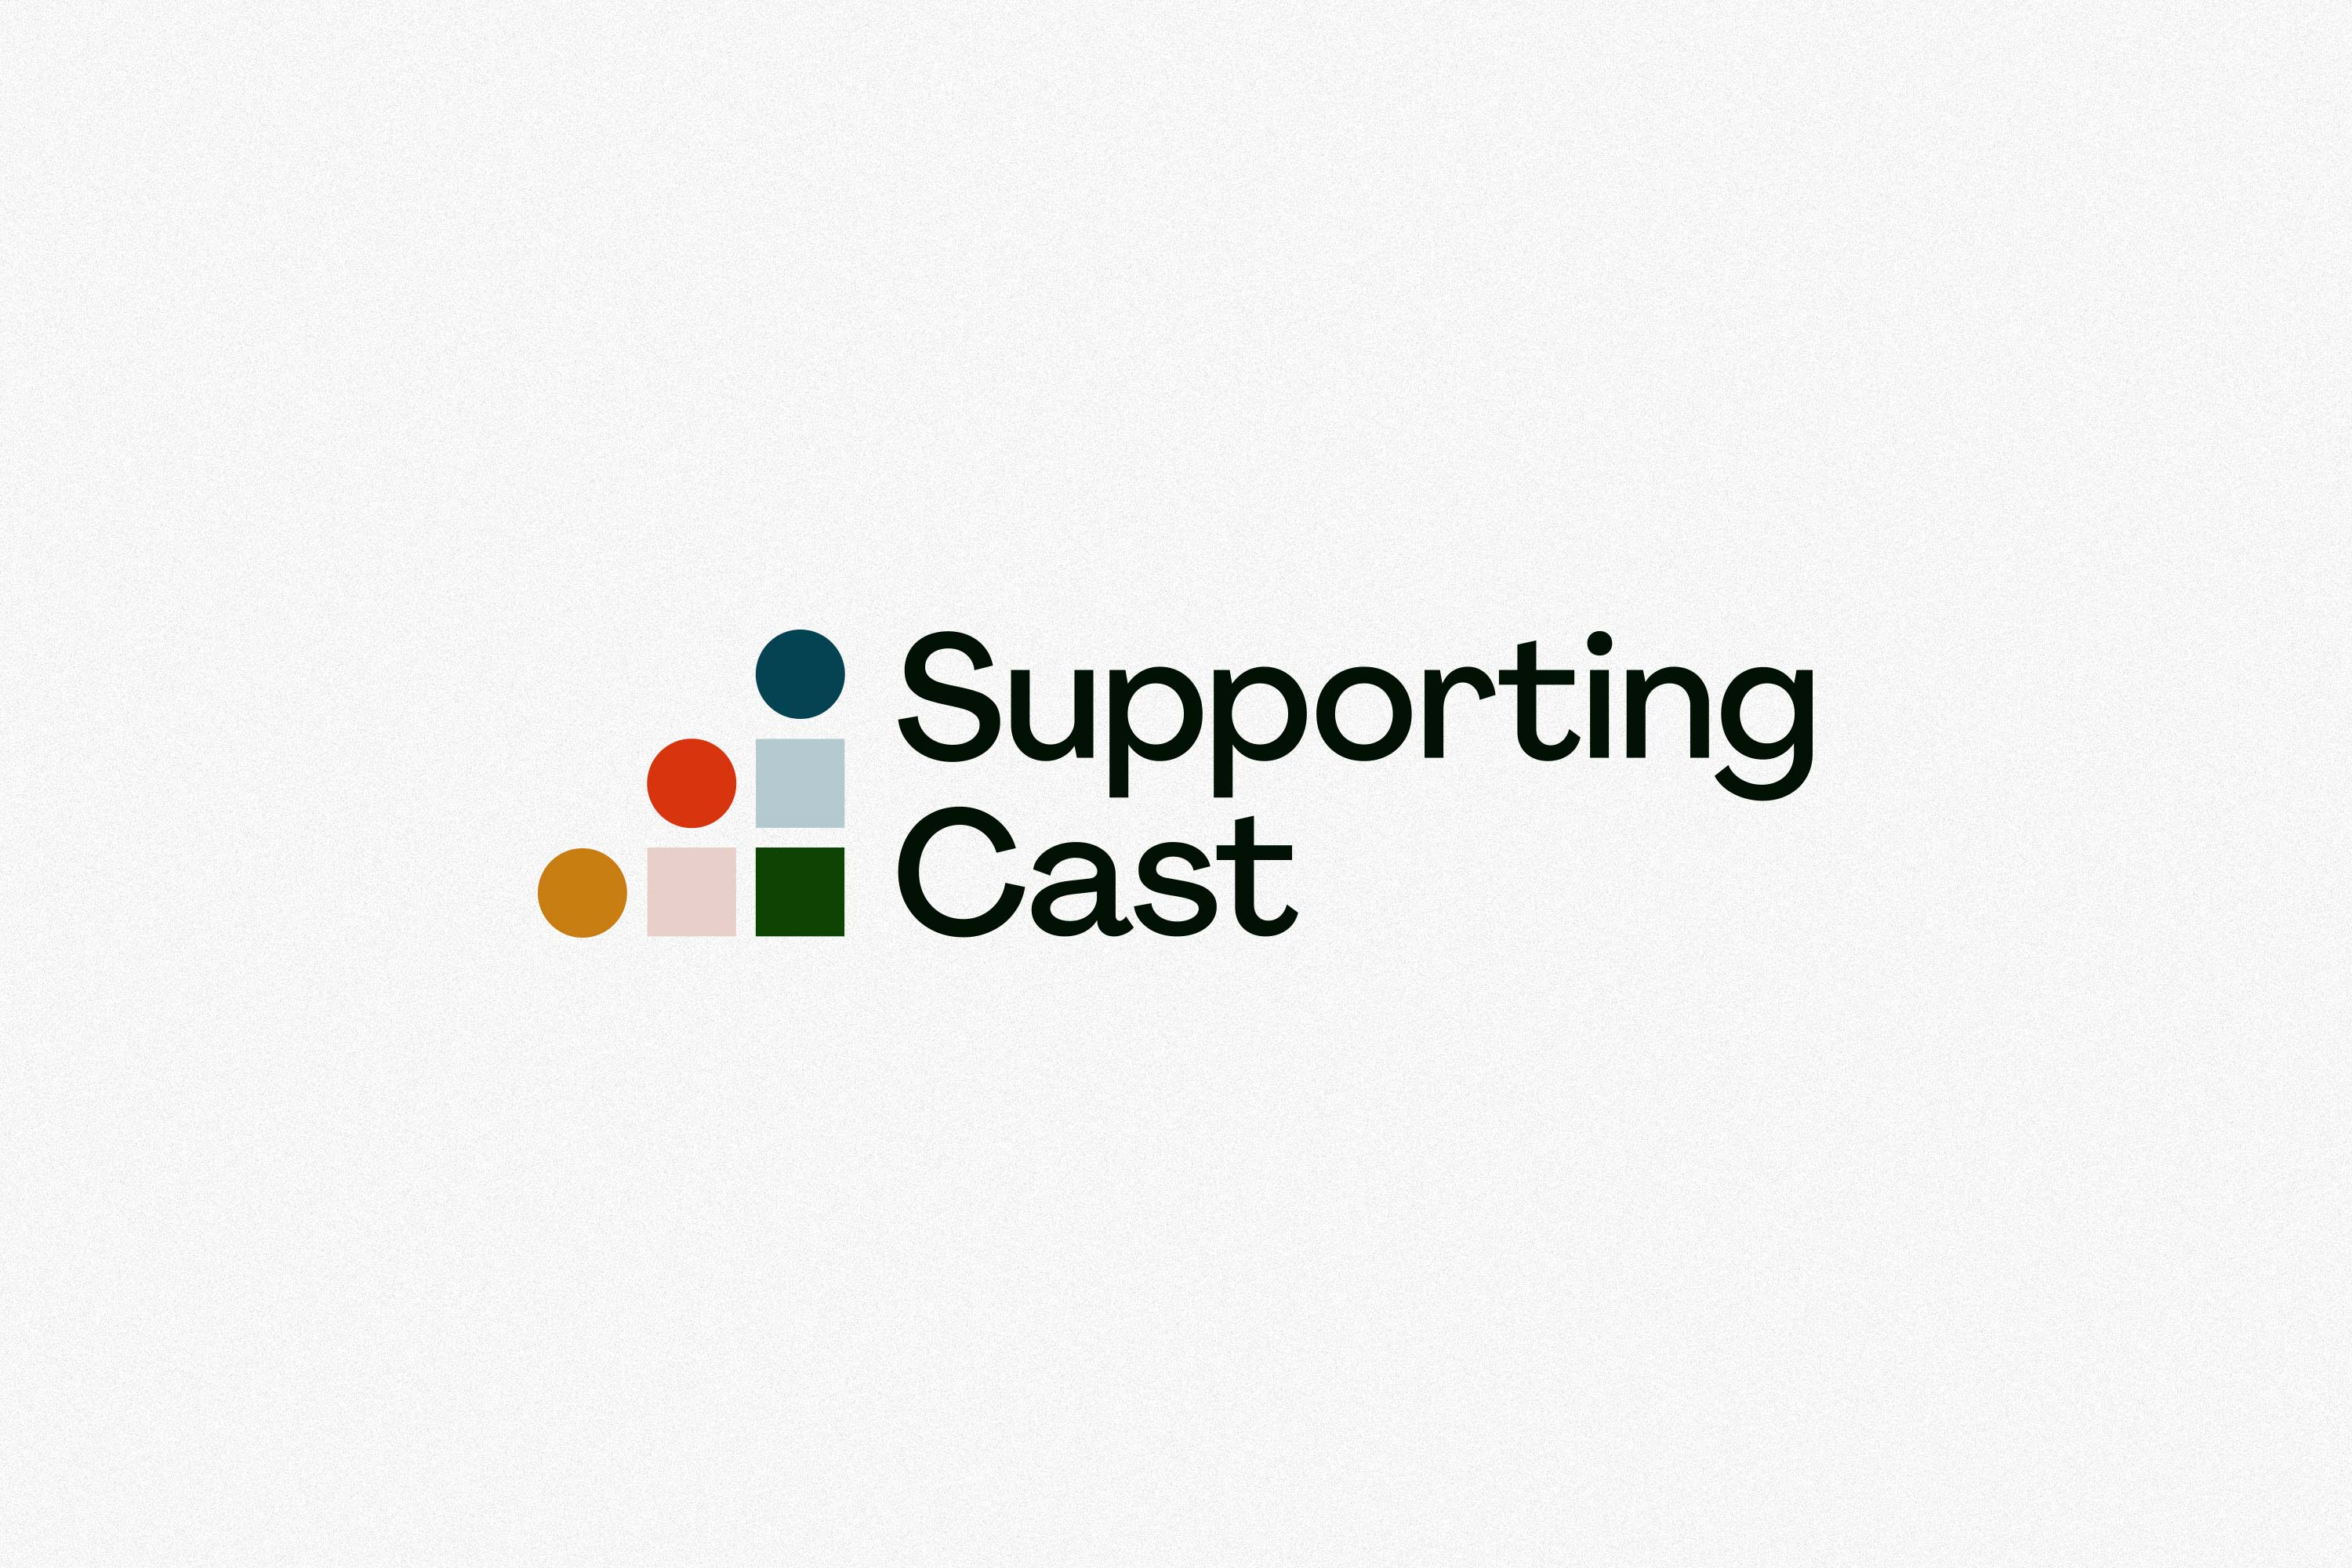 Supporting Cast logo.